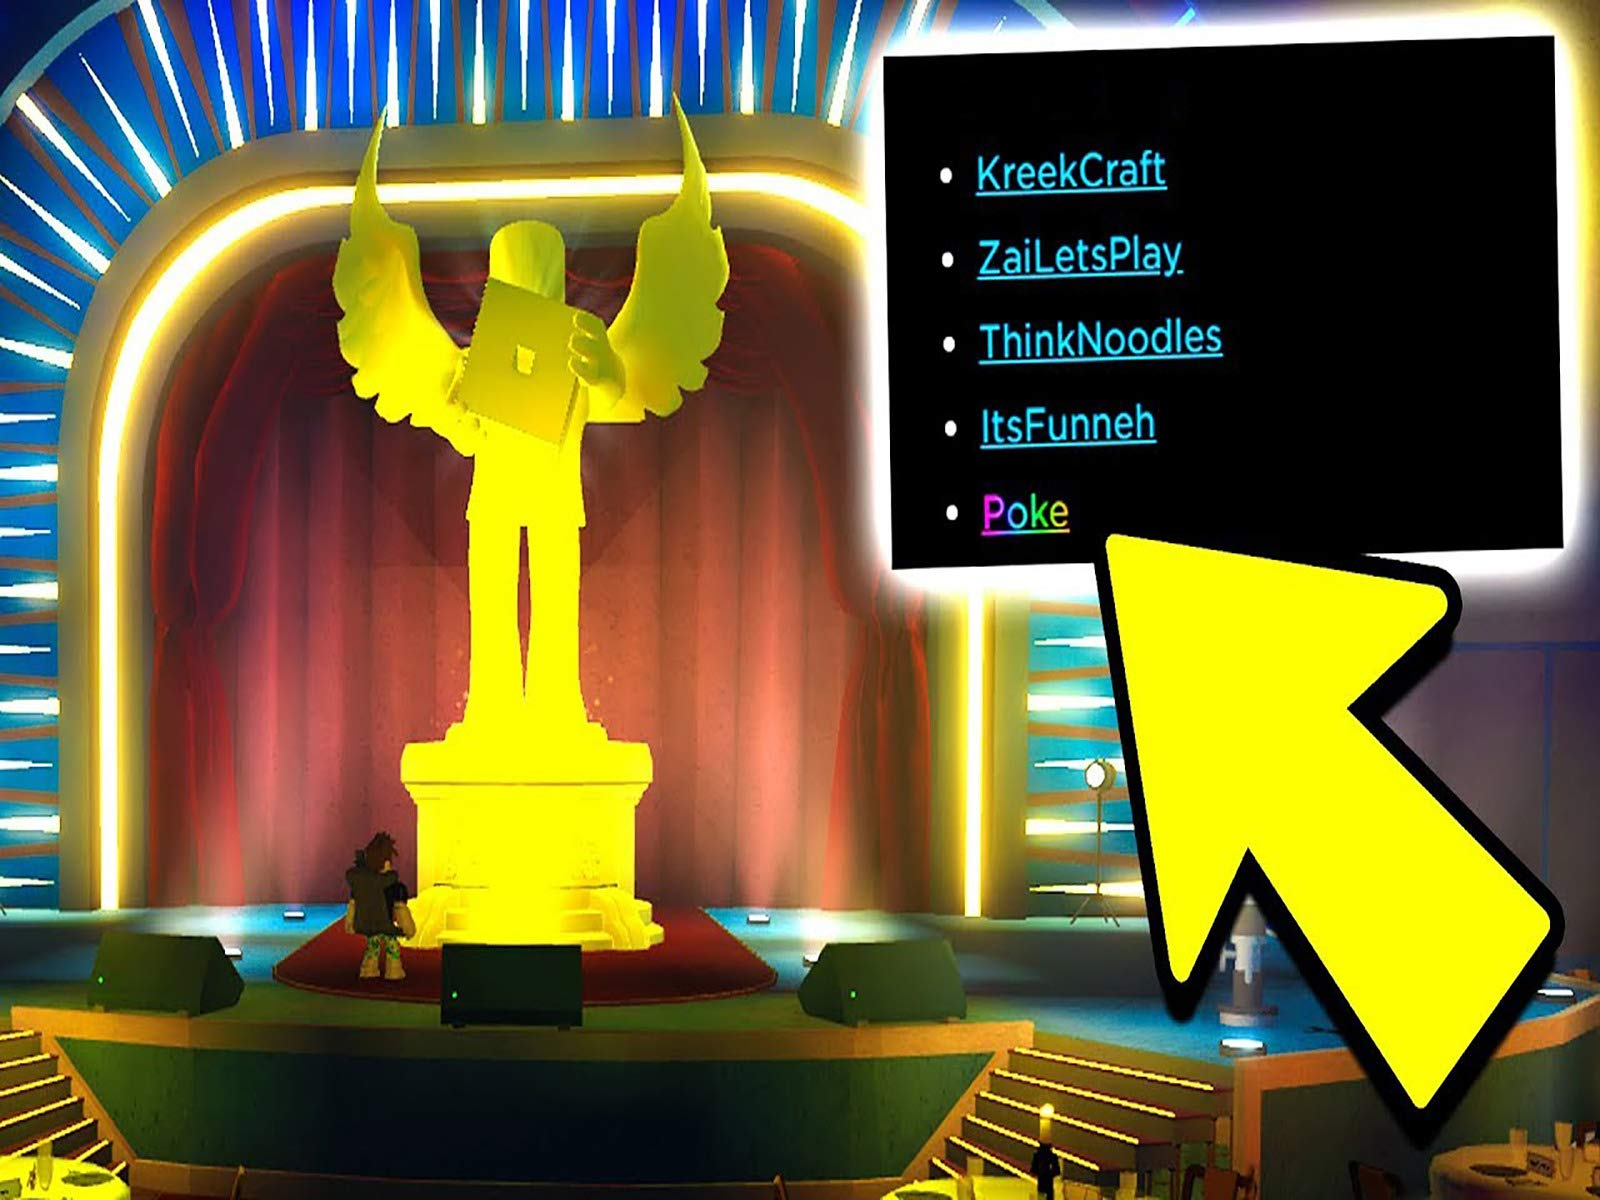 Itsfunneh Roblox Murderer Mystery X - Rixty Codes For Free